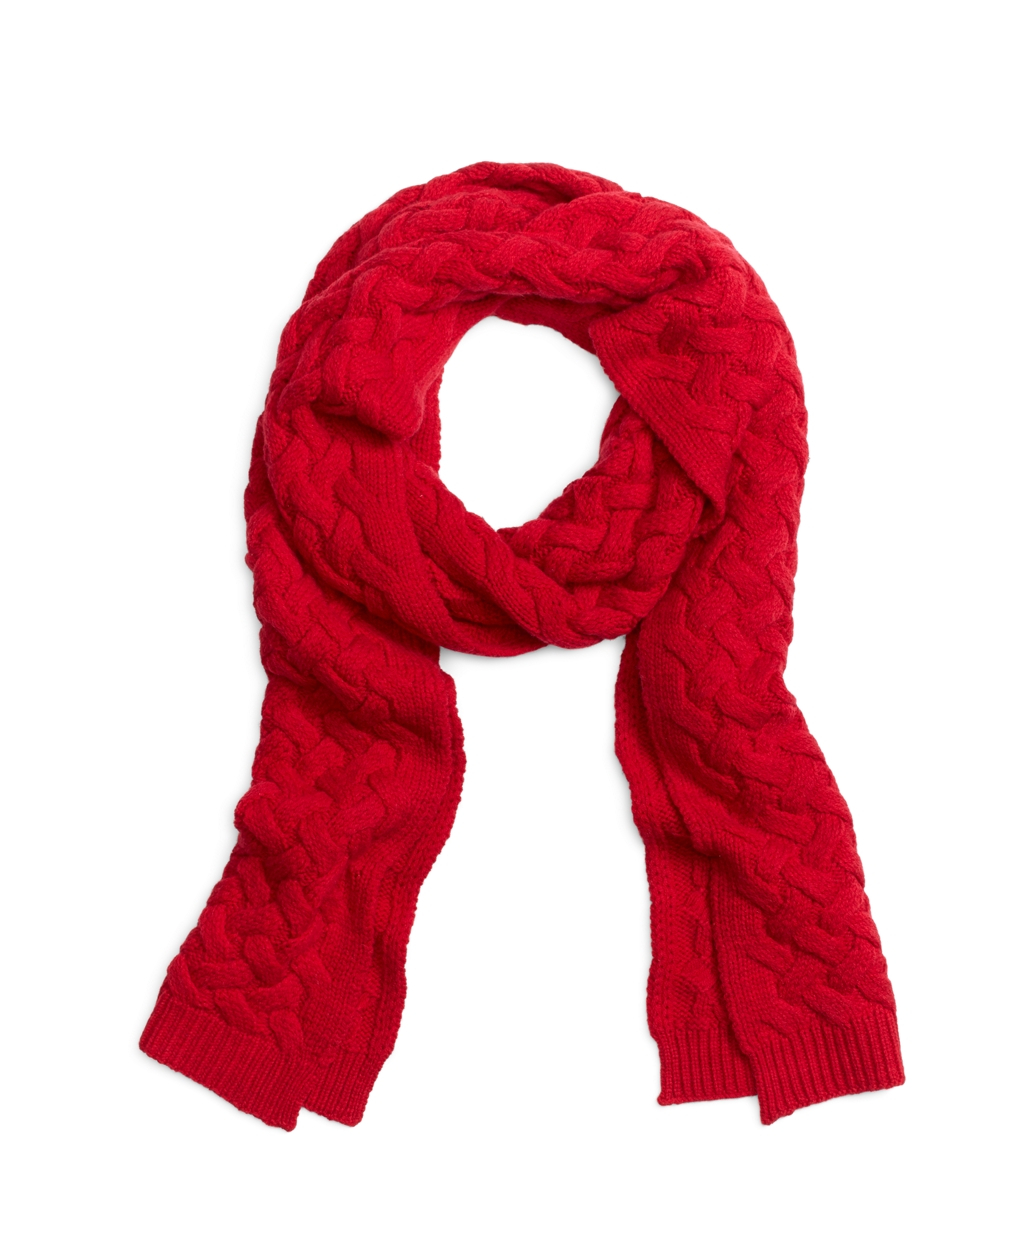 brothers wool cable knit scarf in lyst